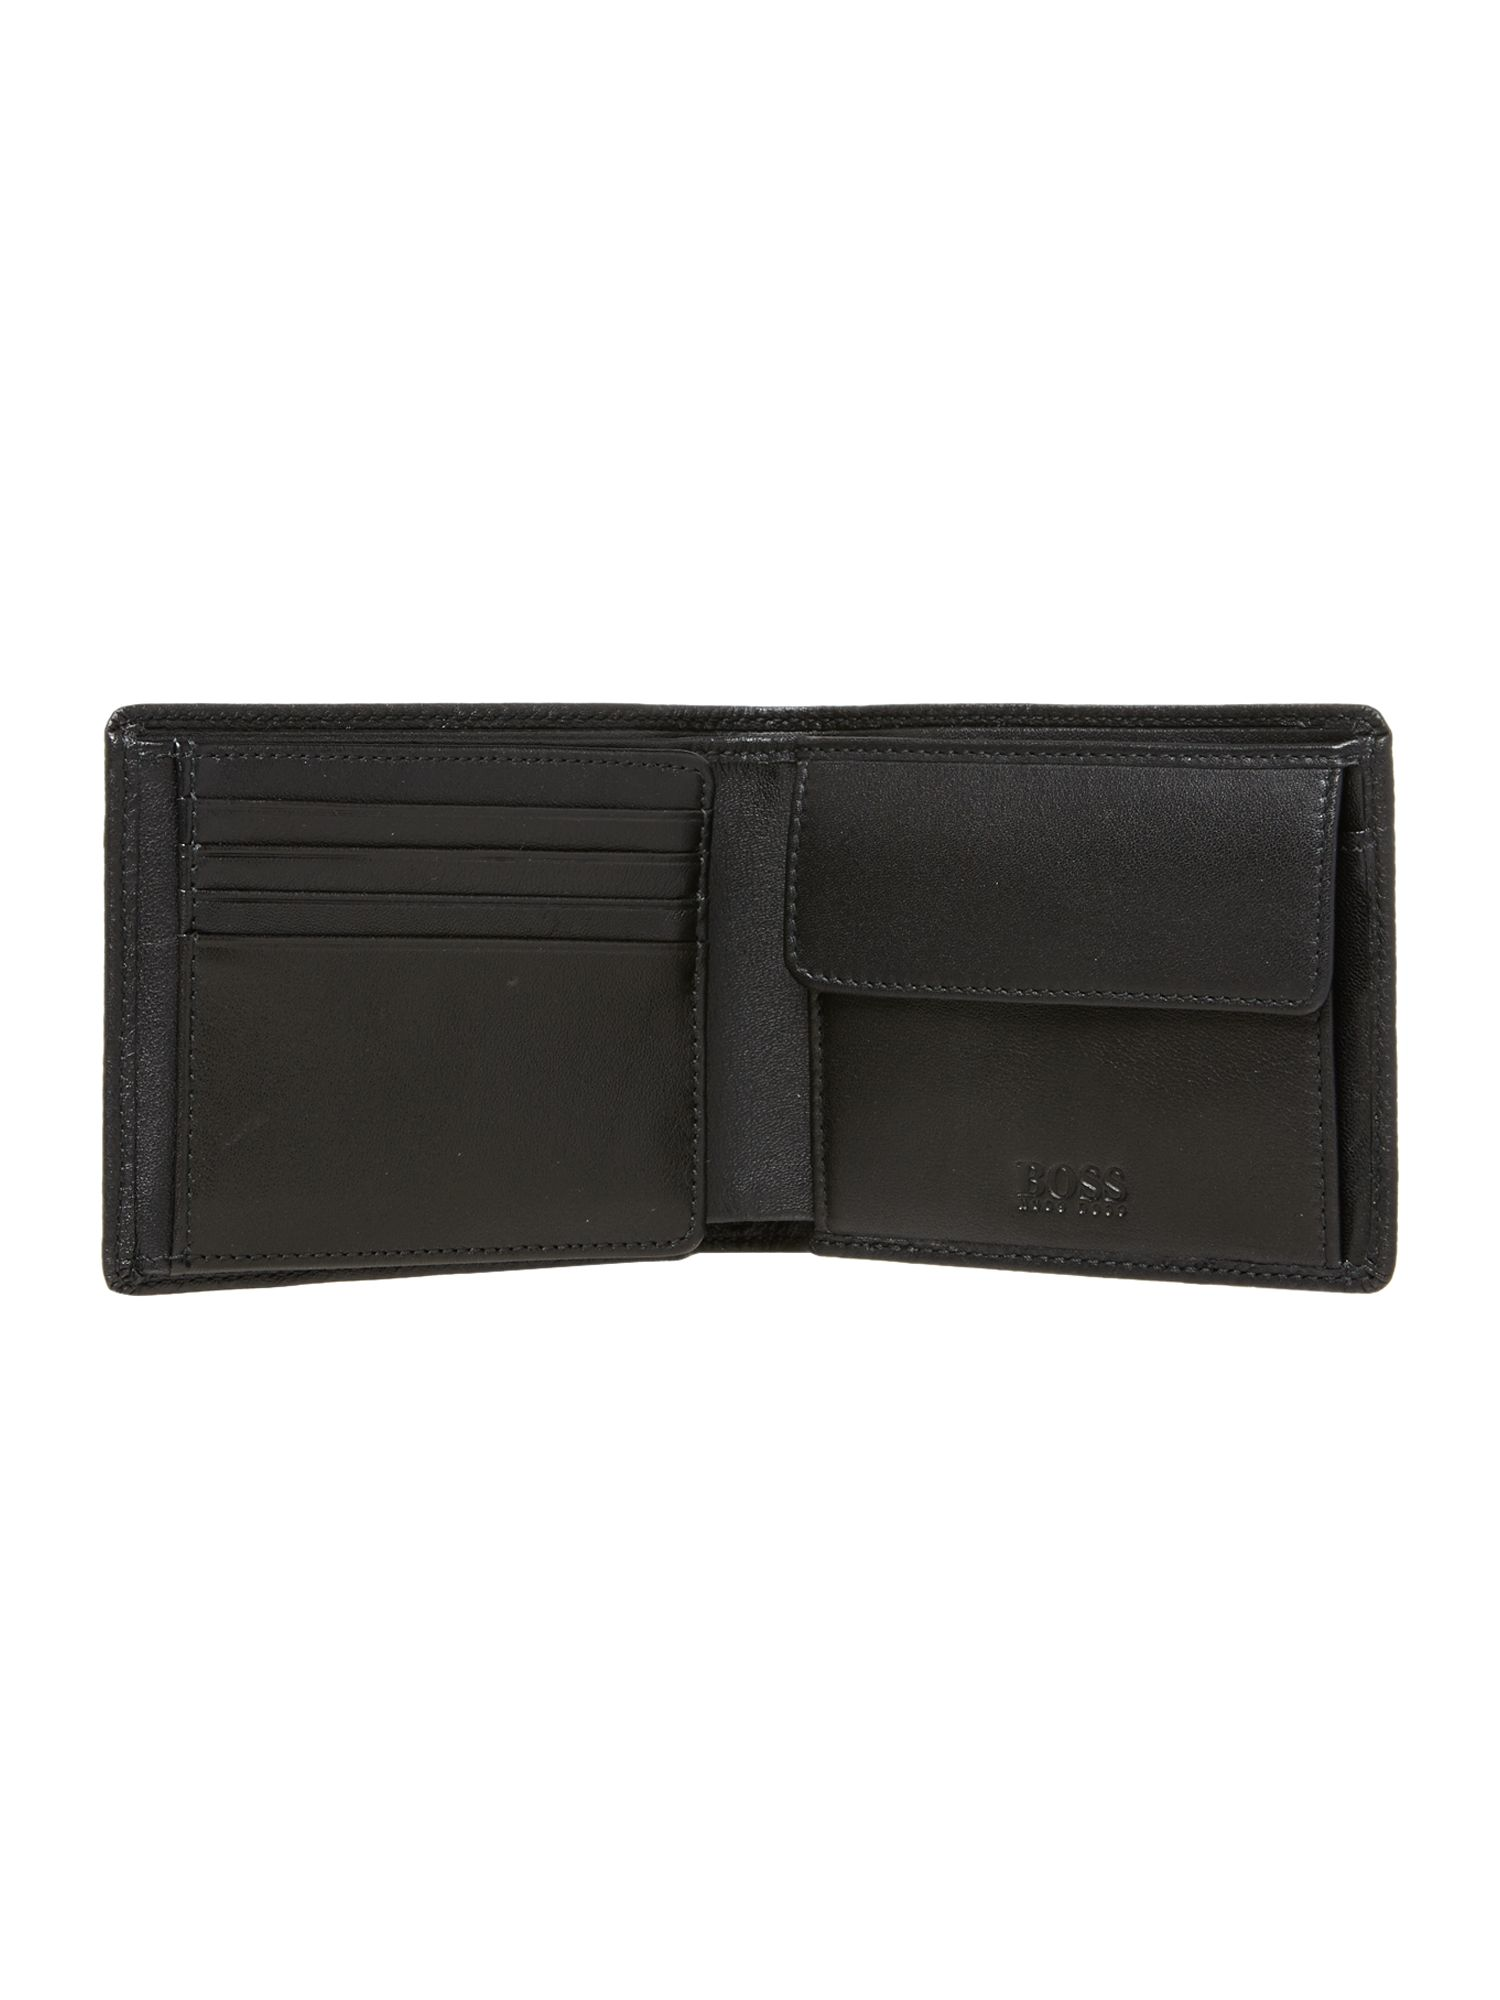 Monad classic coin pocket wallet